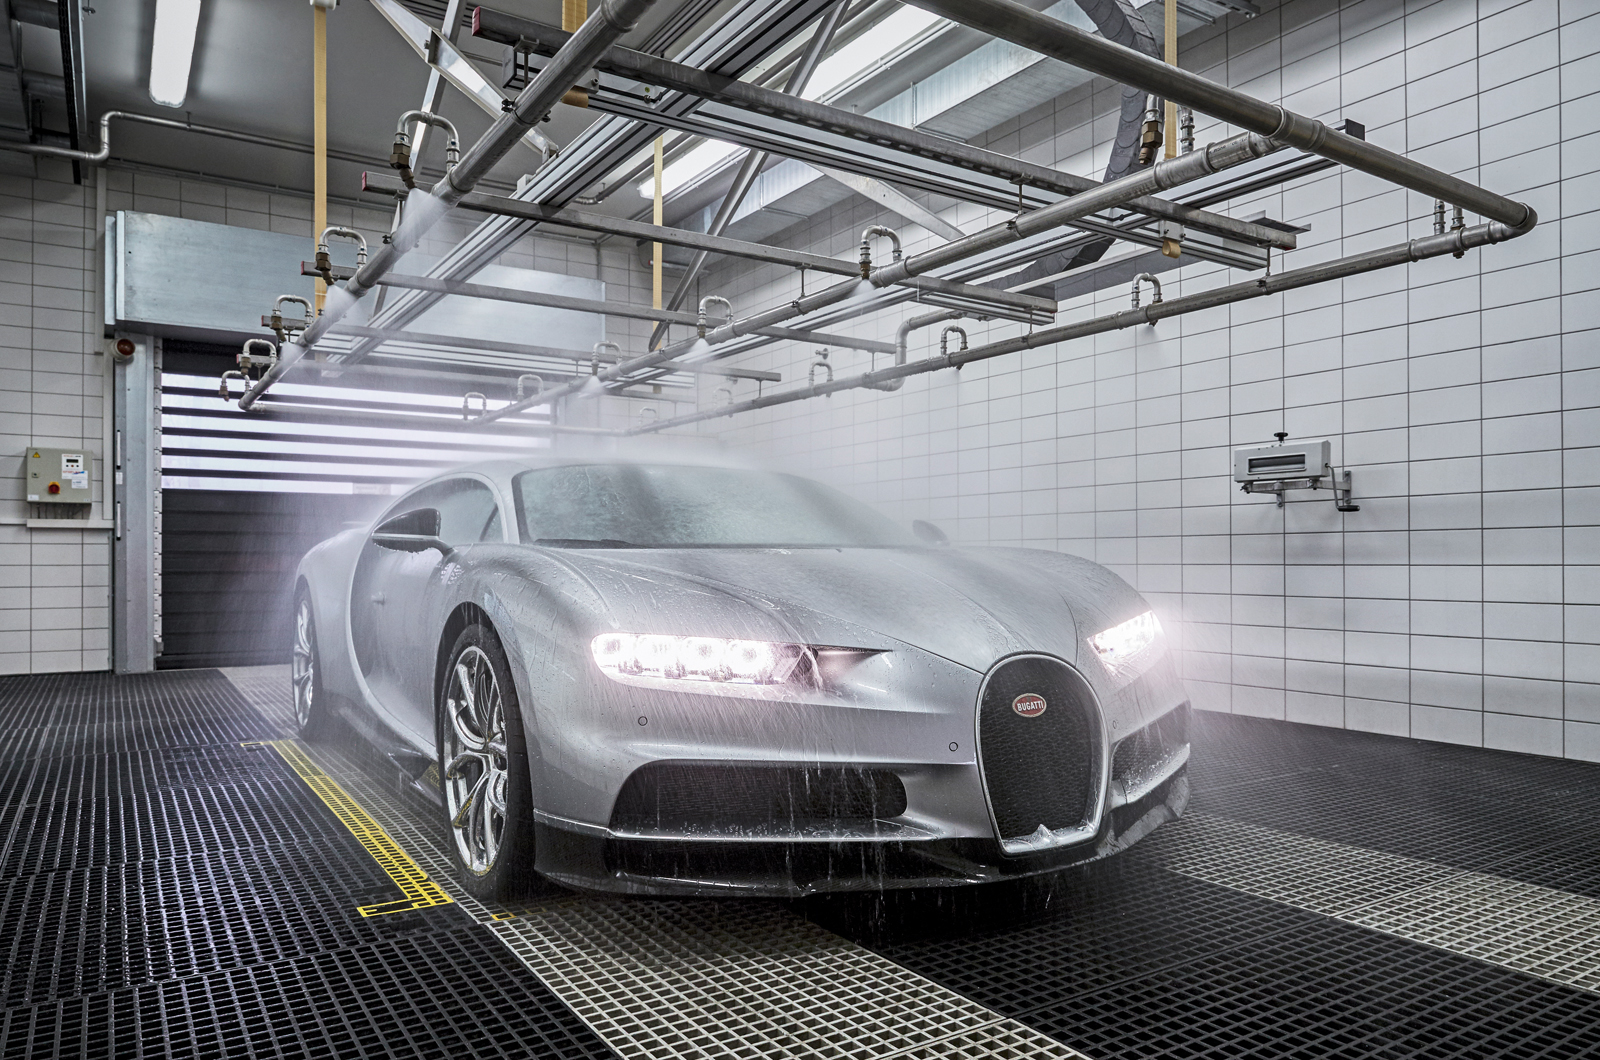 During The Water Test, The Chiron Is Exposed To Monsoon Rain For 30 Minutes  To Ensure There Are No Leaks.